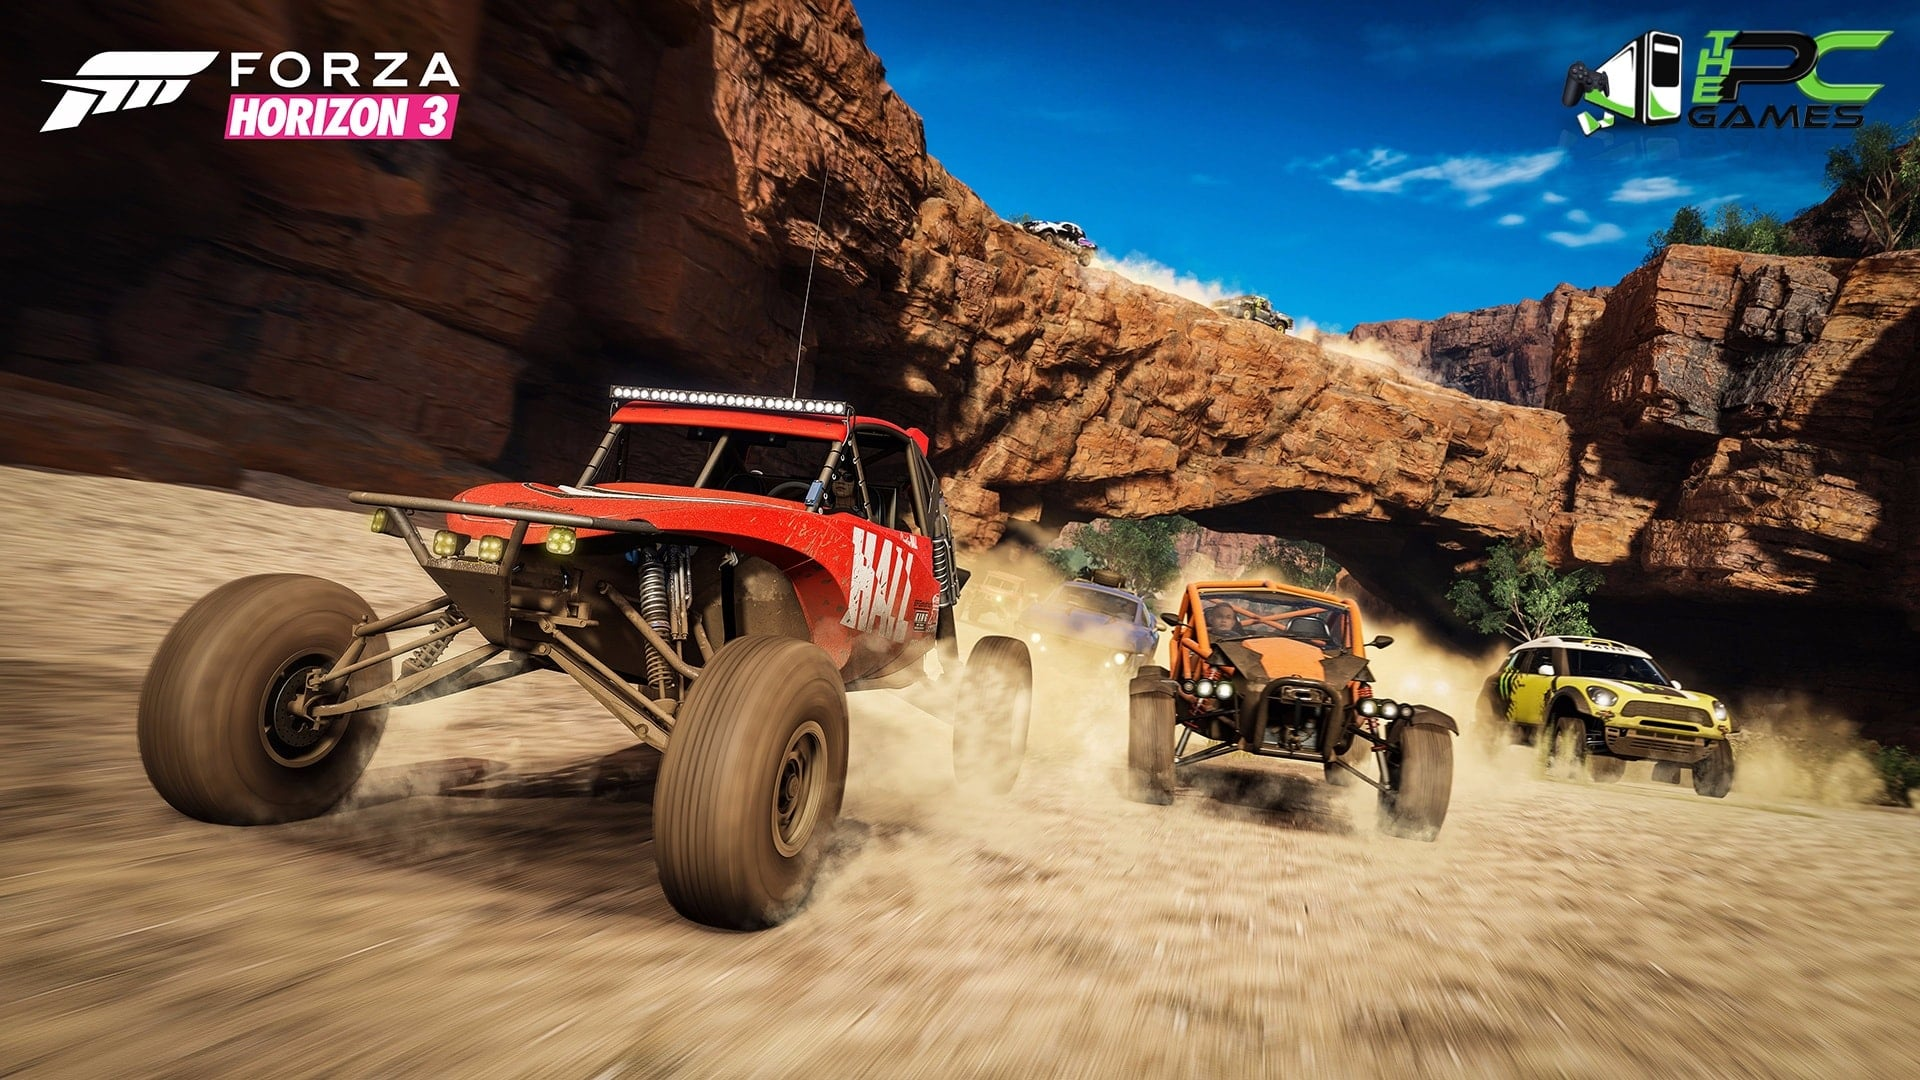 Forza horizon 2 free download